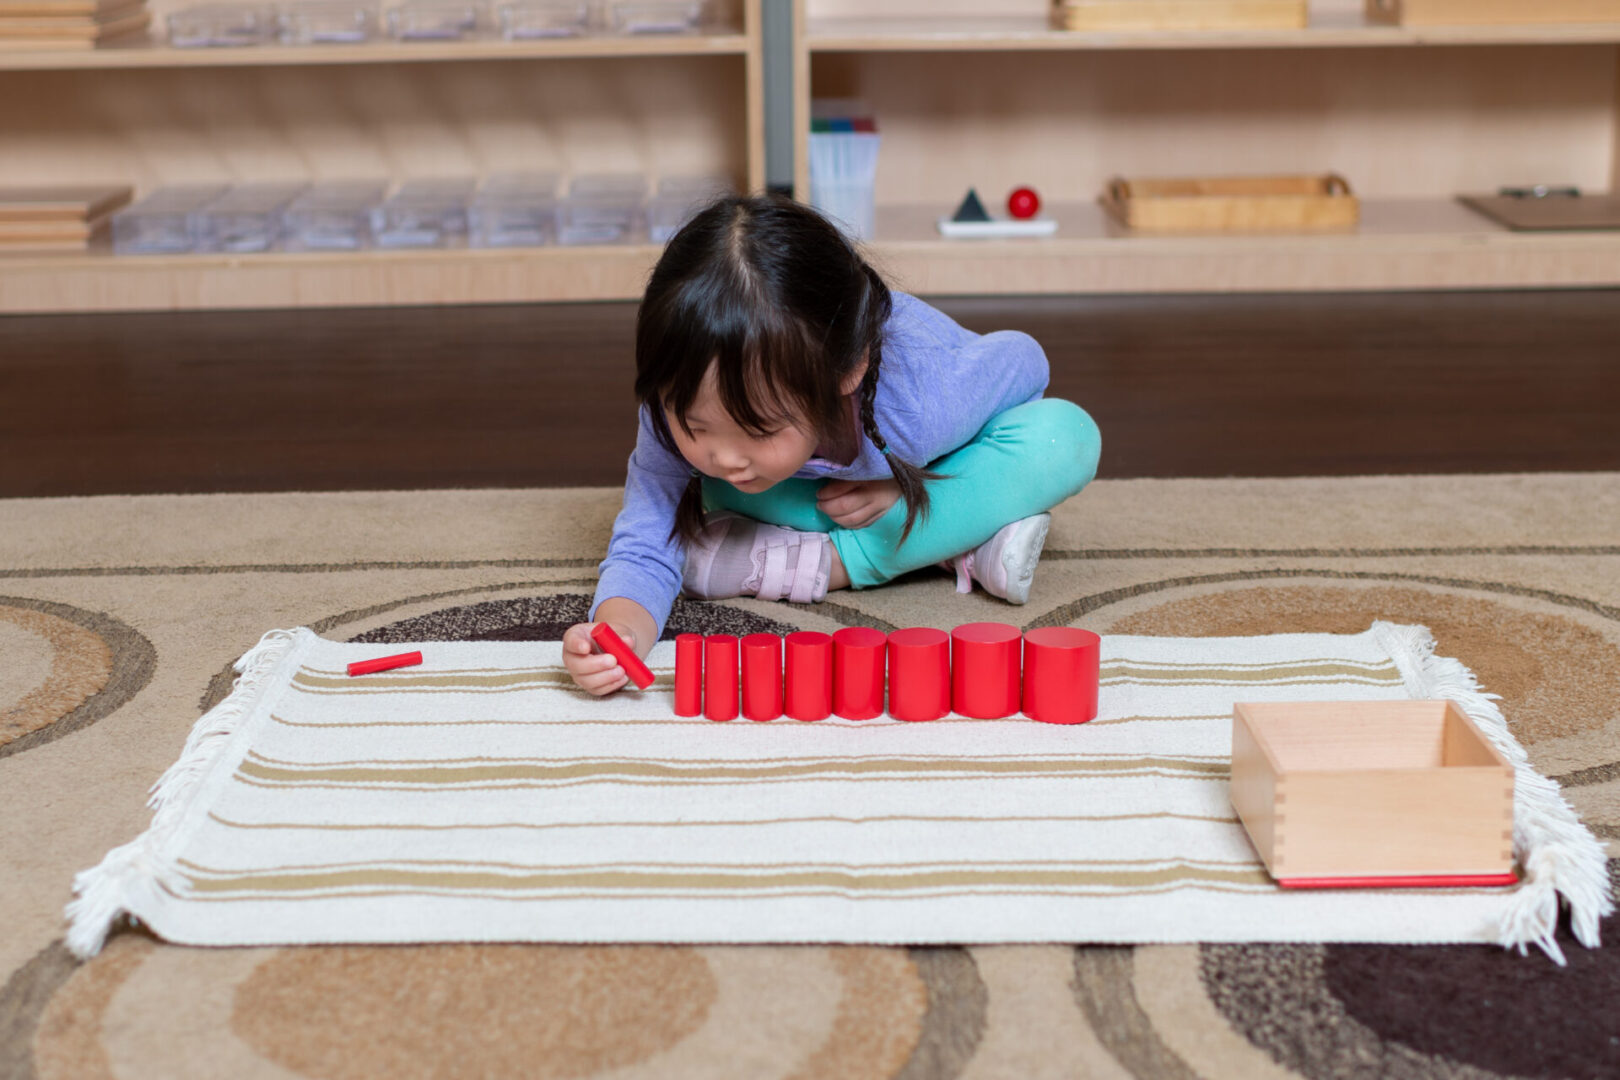 A cute little girl playing with wooden blocks